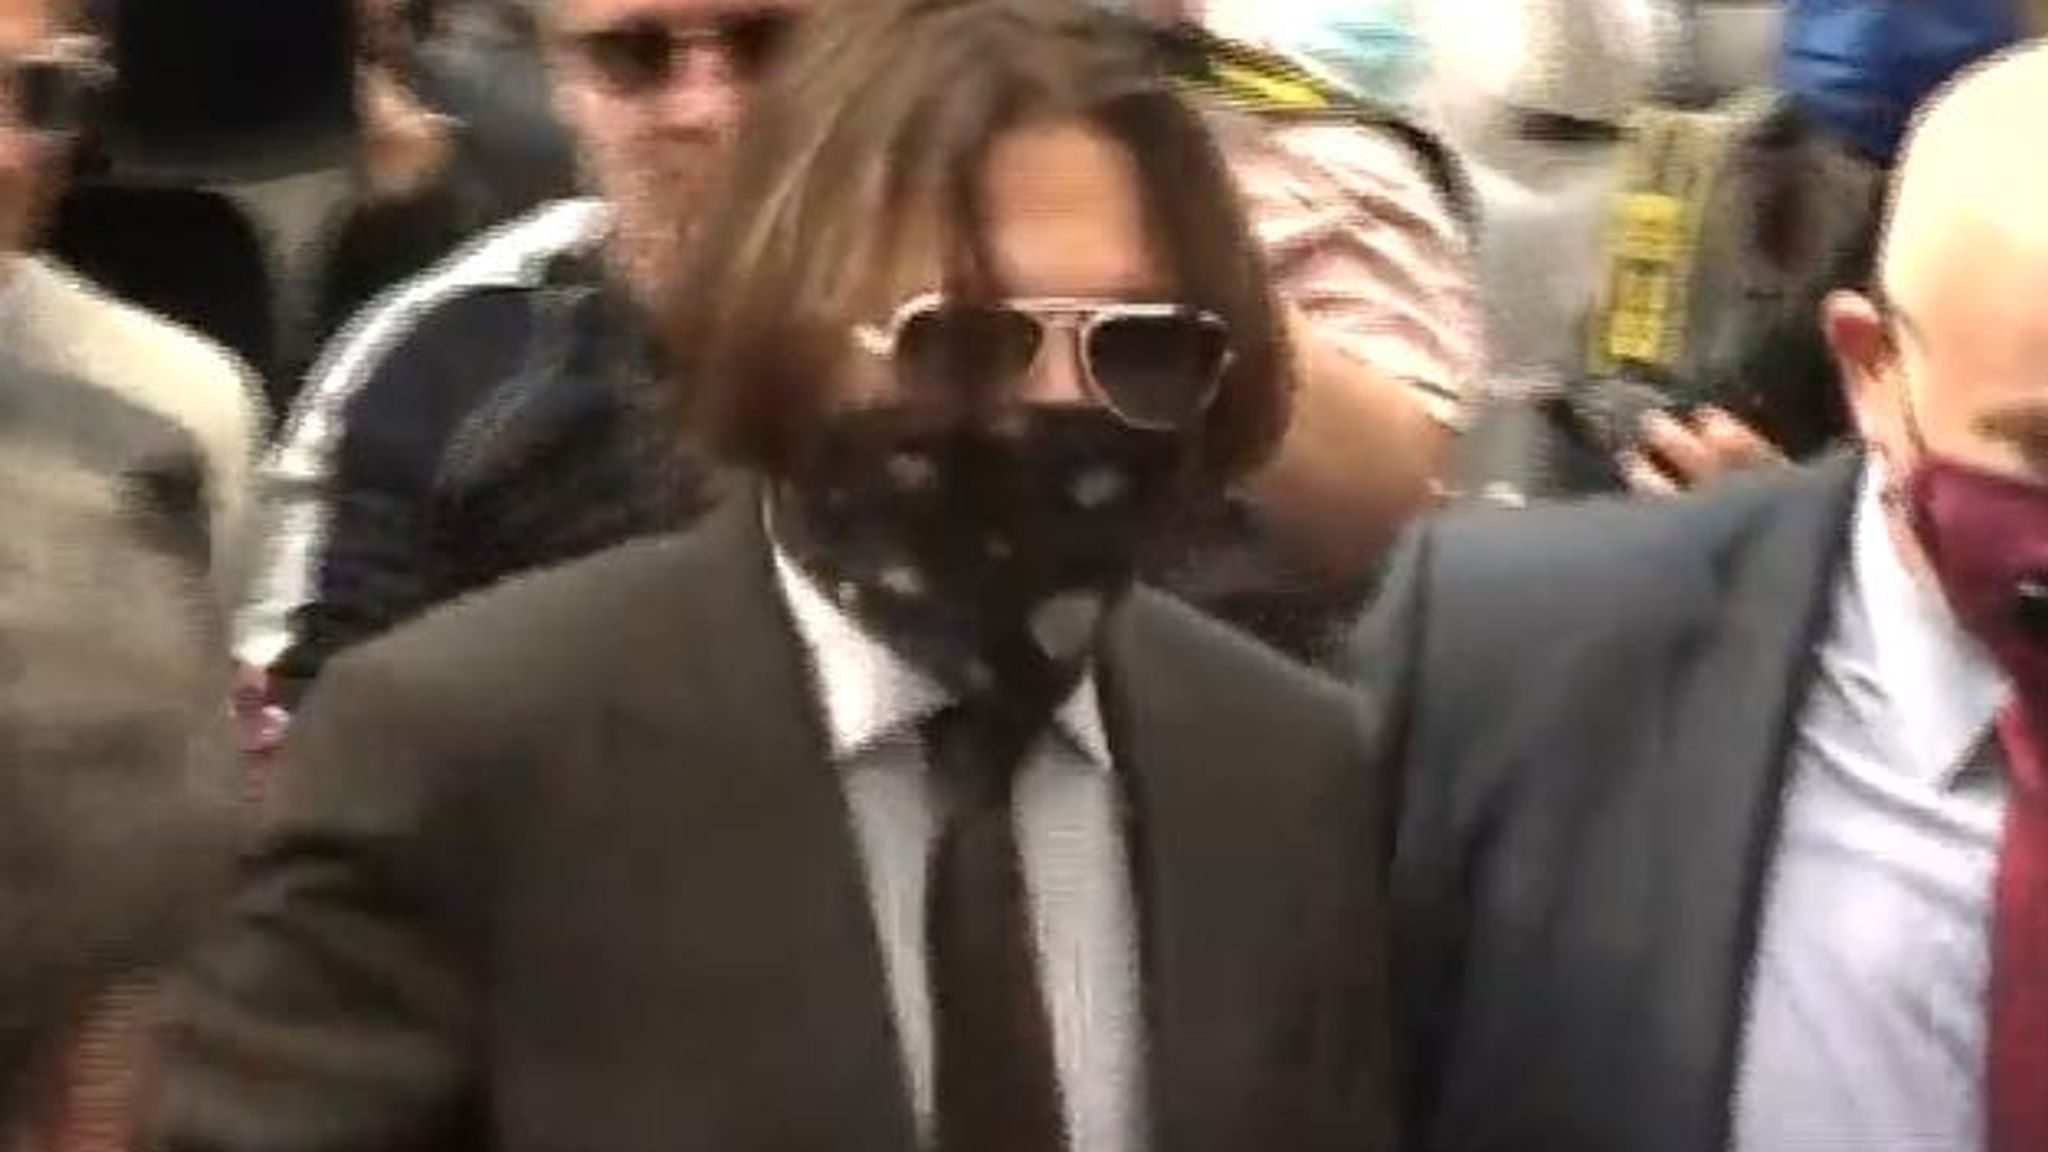 Johnny Depp swamped by photographers as he arrives for another day of libel trial